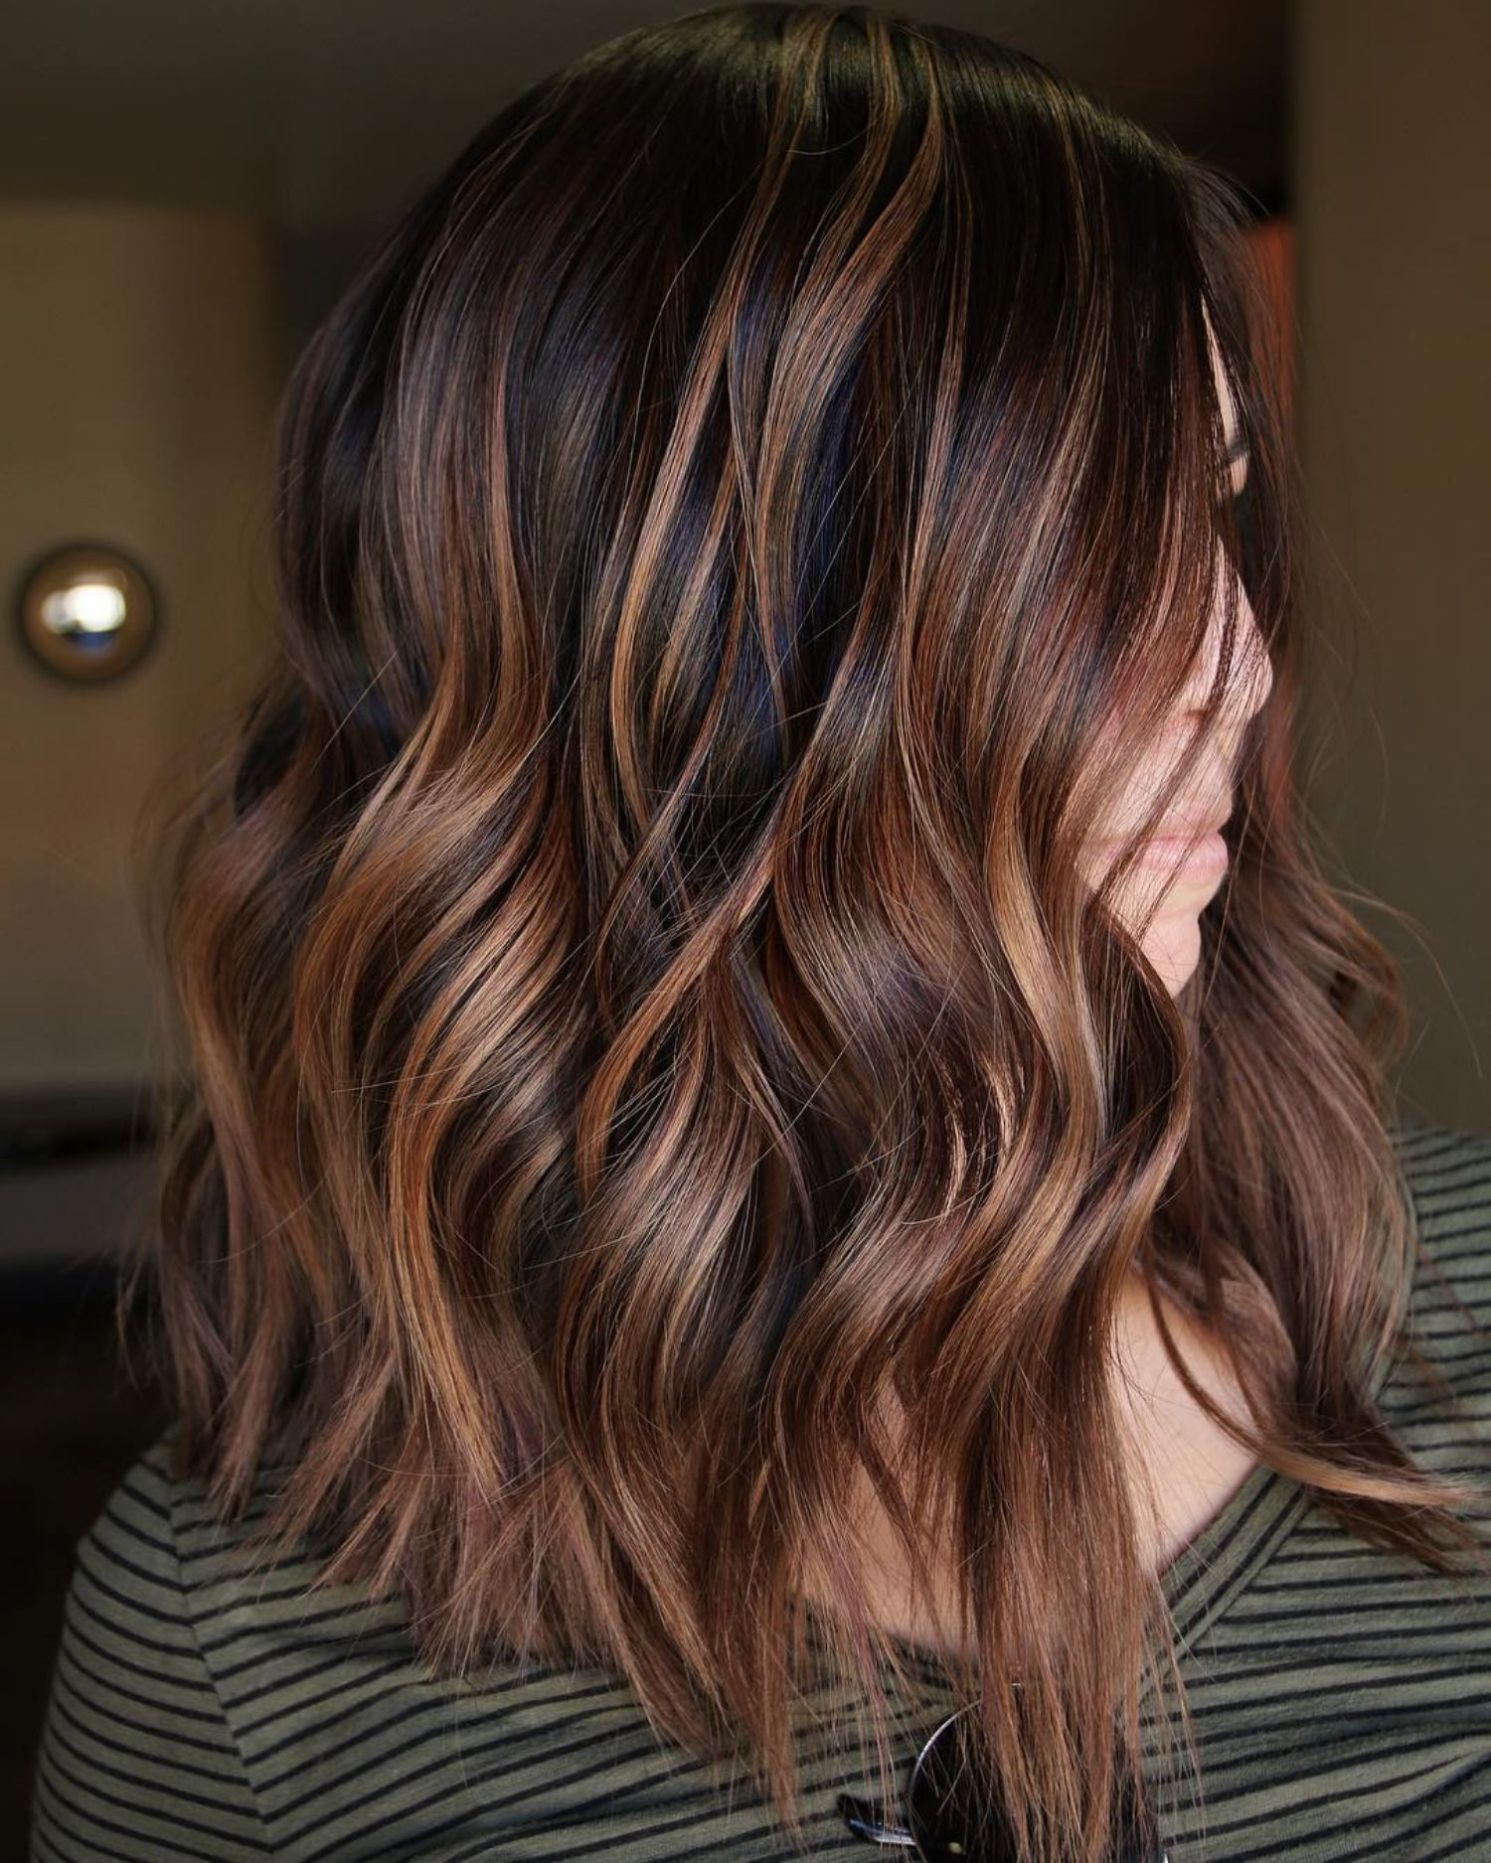 60 Looks With Caramel Highlights On Brown And Dark Brown Hair Caramel Brown Hair Brown Hair Balayage Hair Color Light Brown